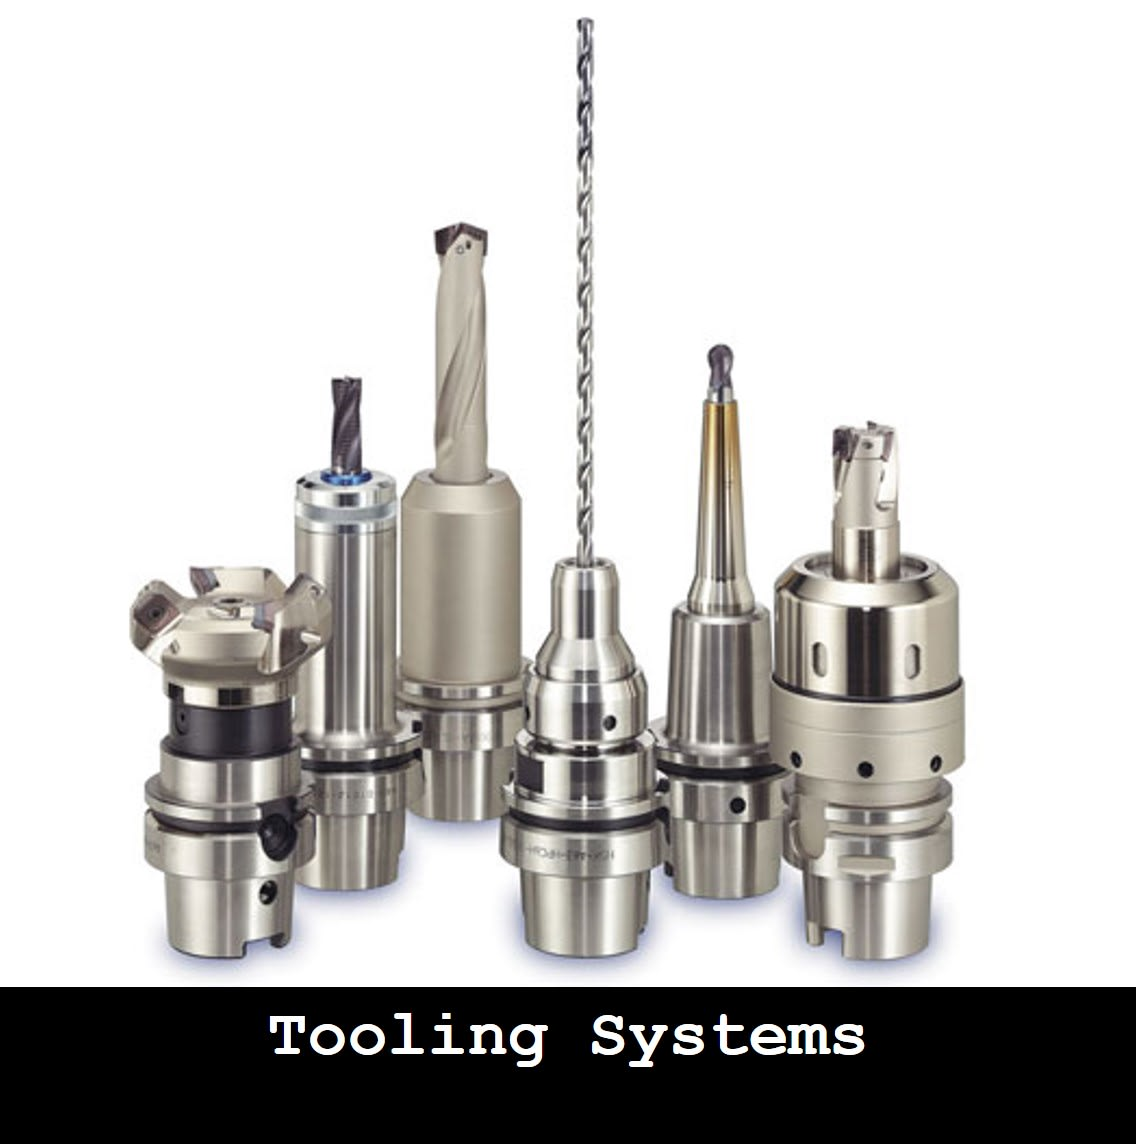 Tooling Systems | Smith Industrial Supply | Port Colborne Industrial Supply